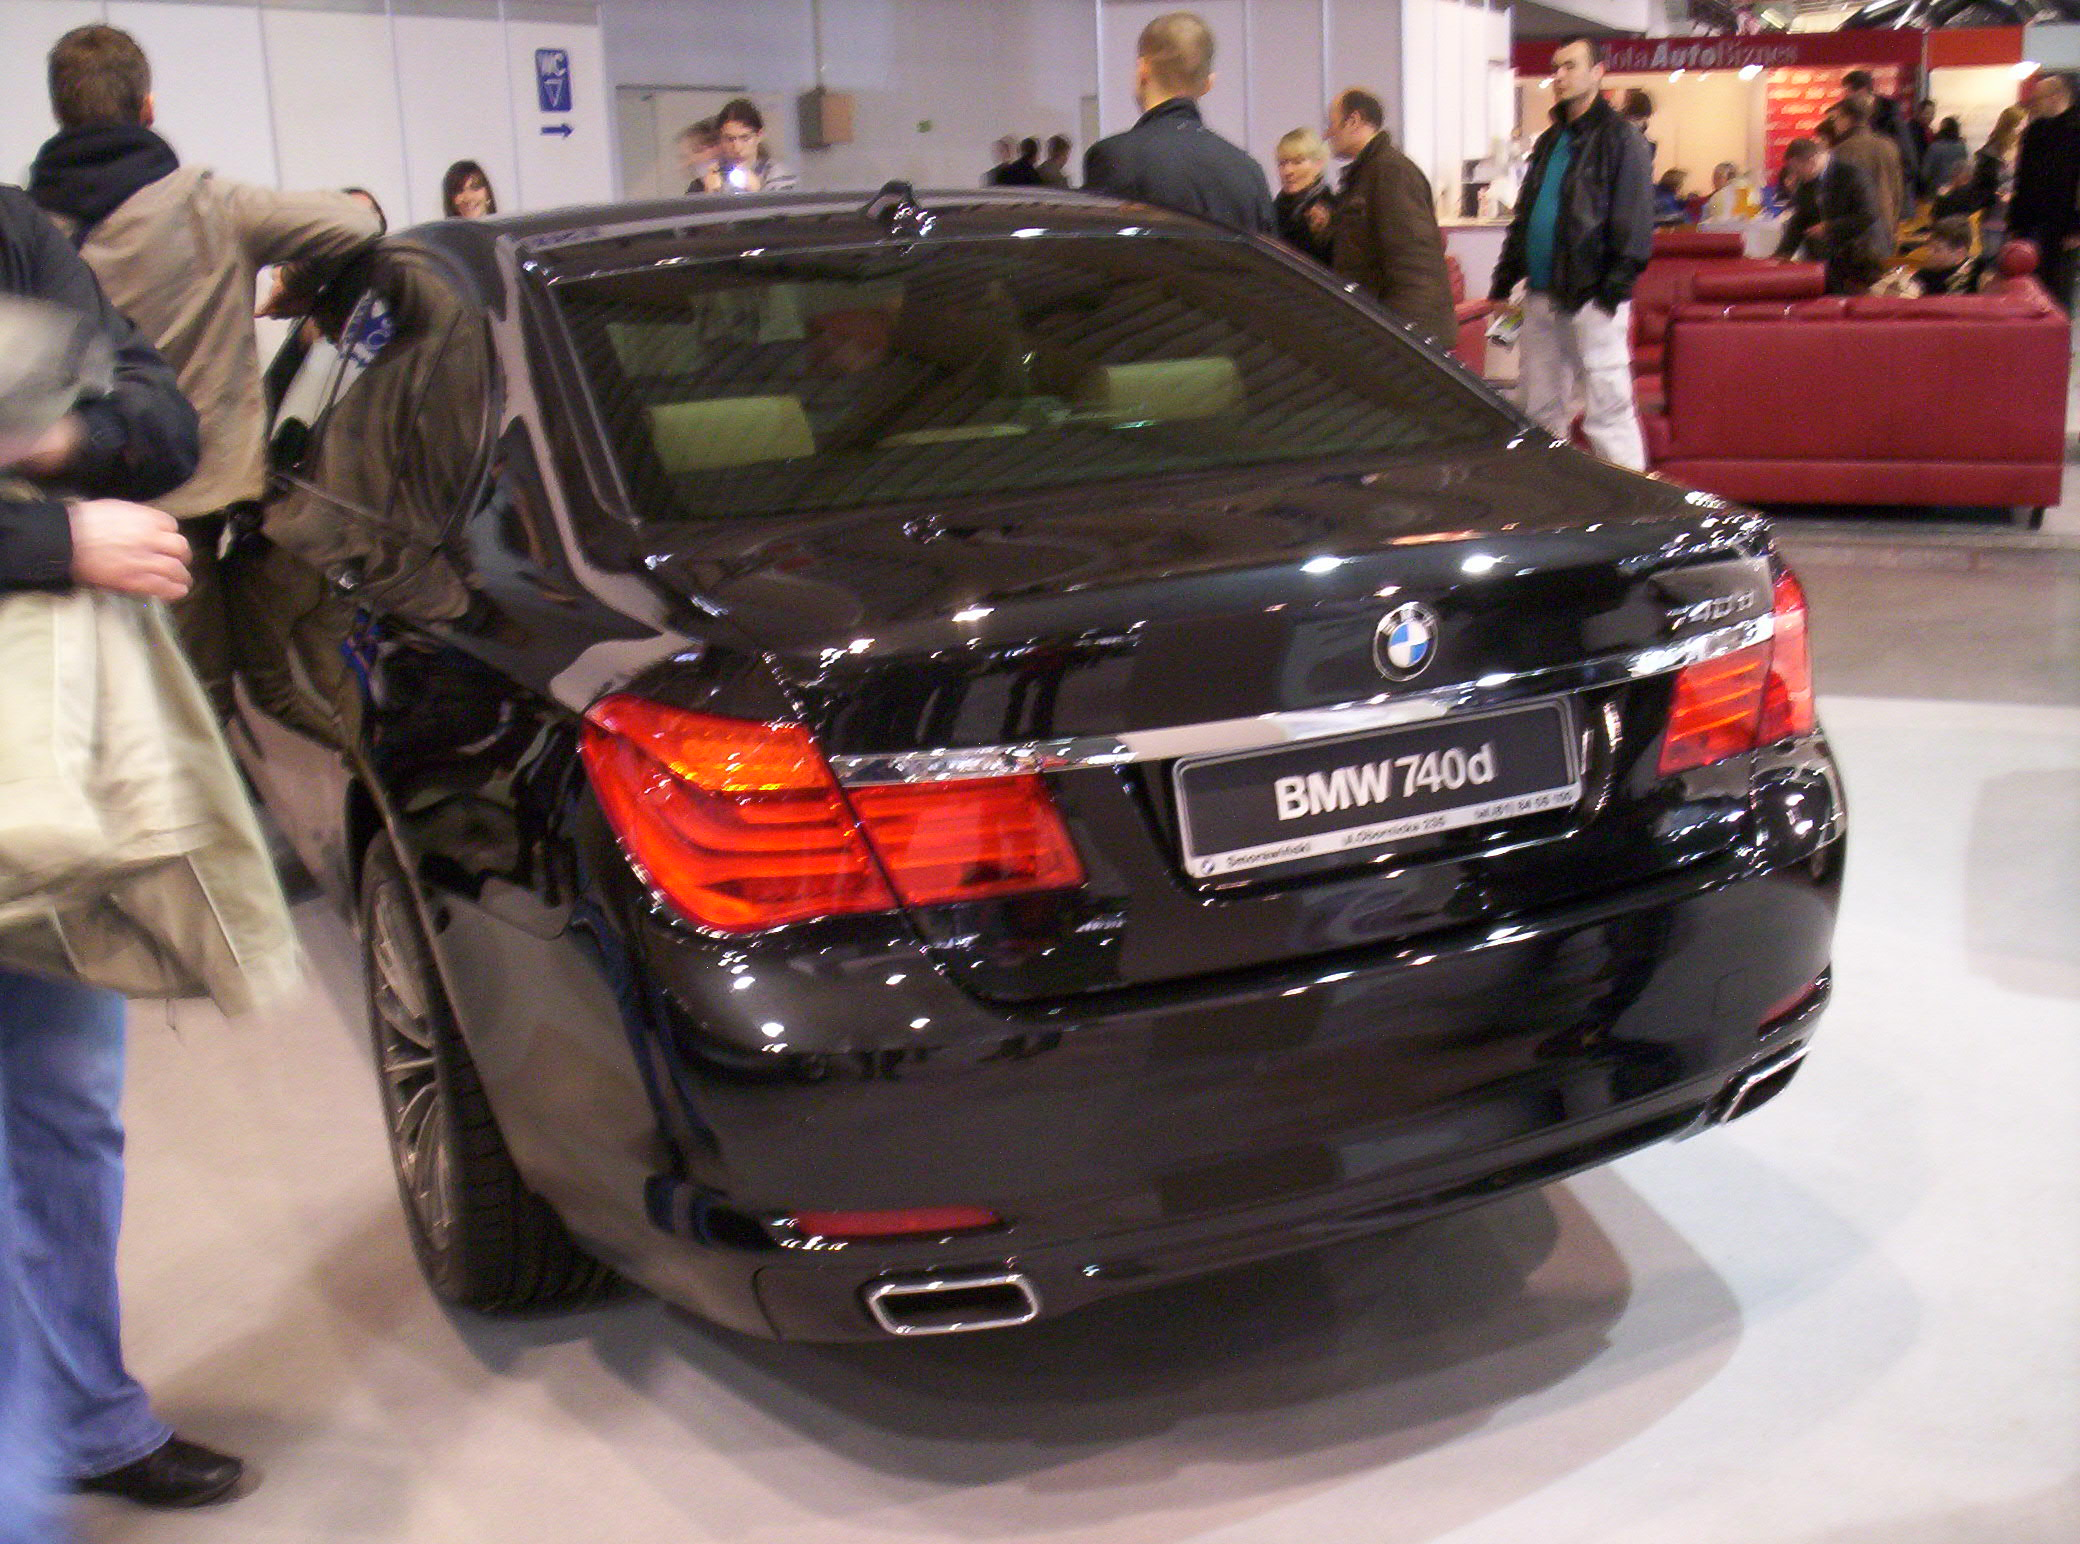 file bmw 740d f01 rear poznan wikimedia commons. Black Bedroom Furniture Sets. Home Design Ideas